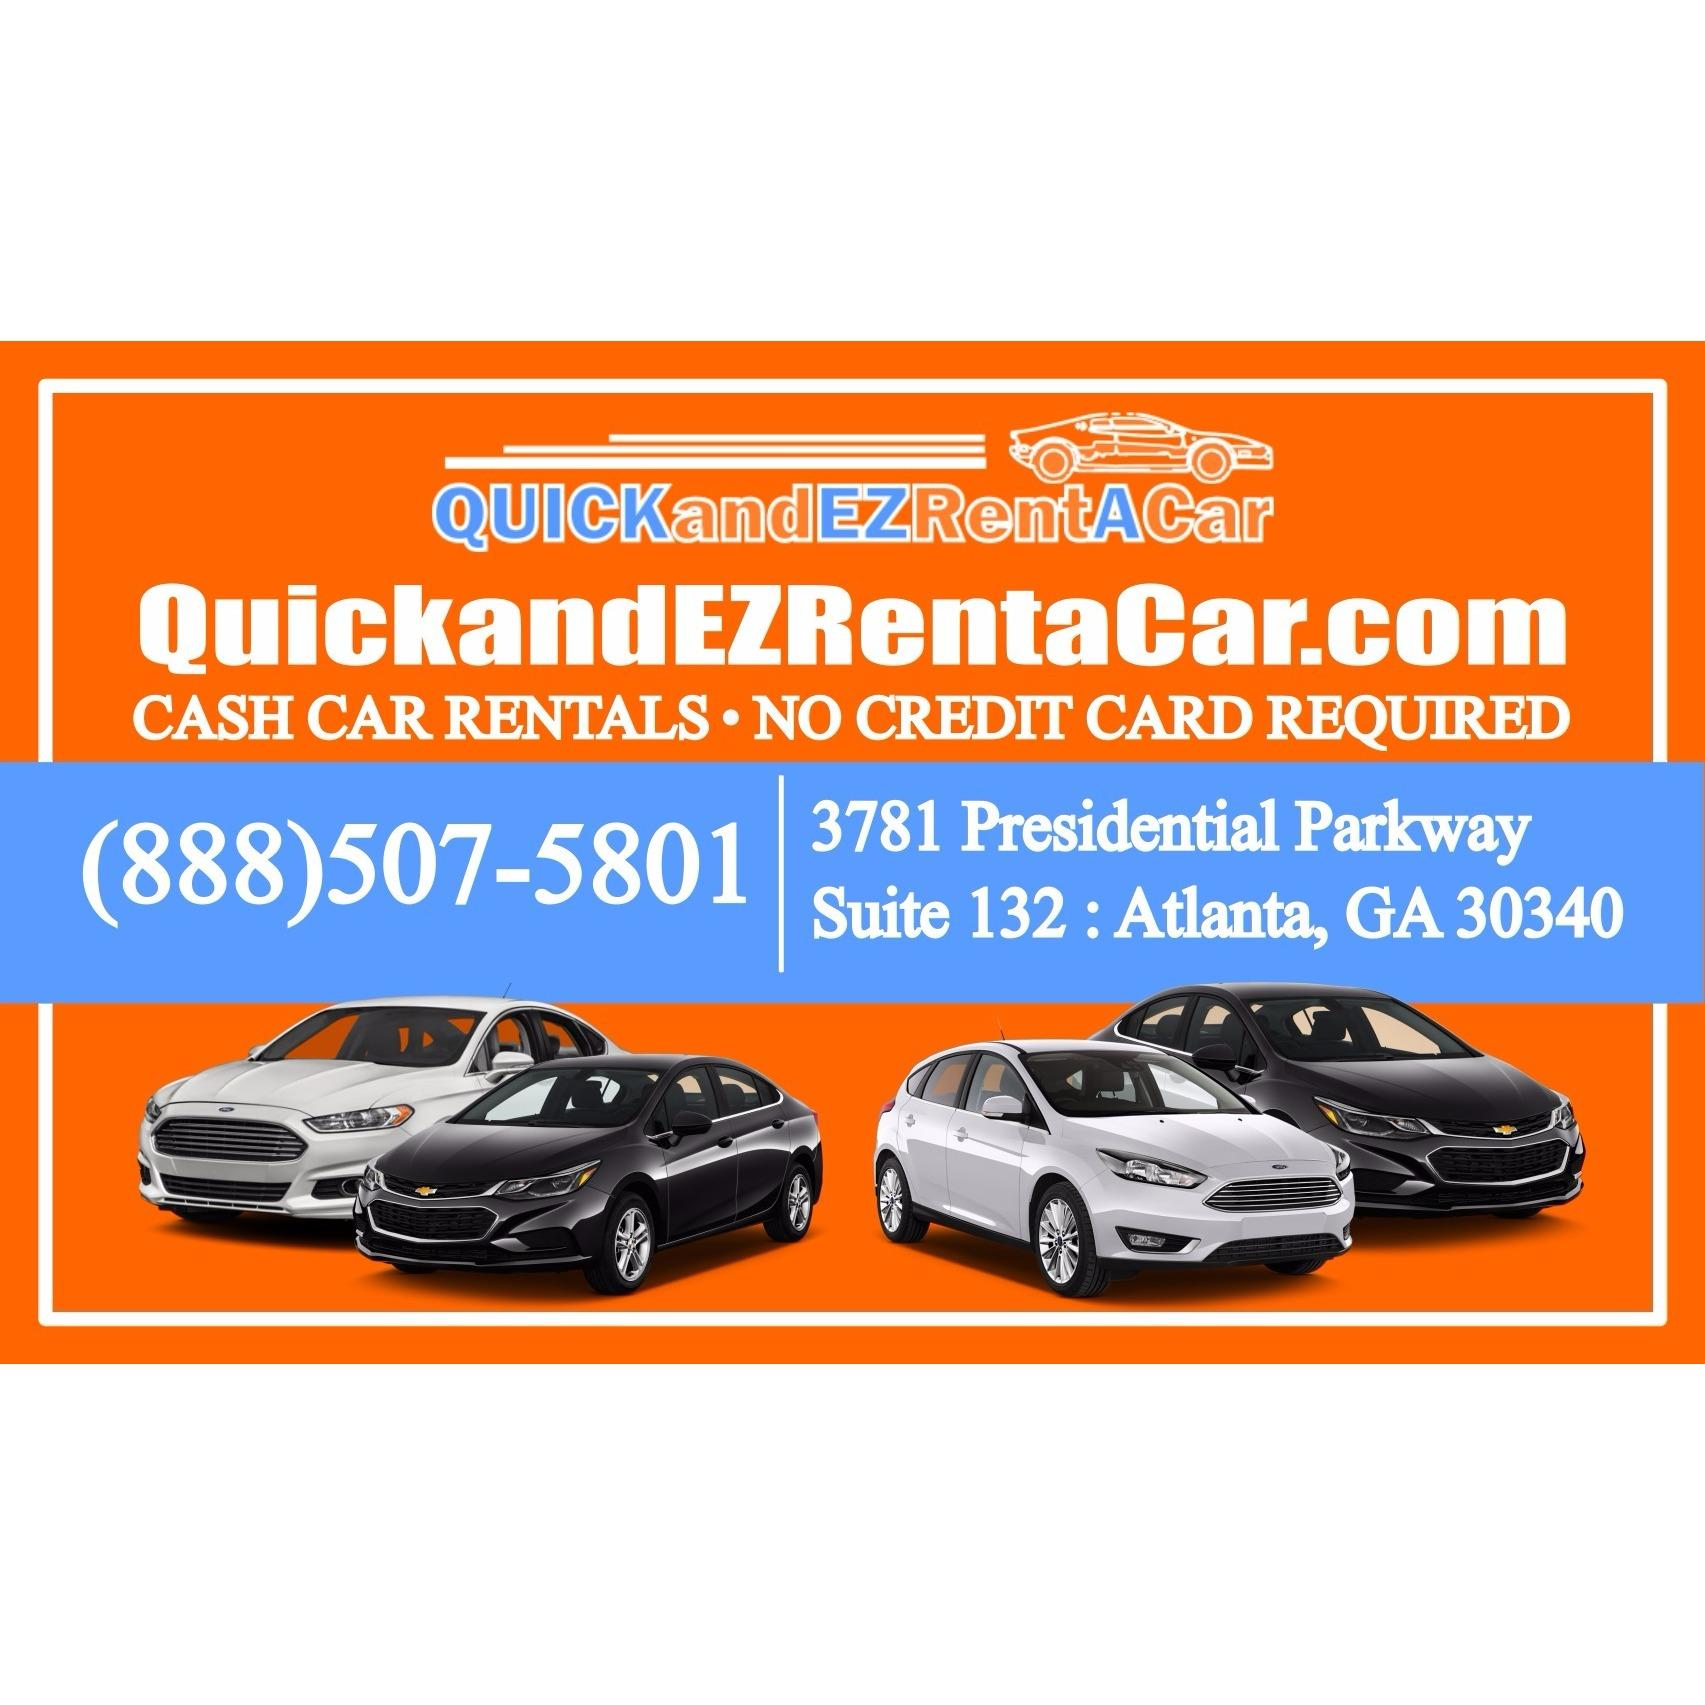 Ez Rental Car Atlanta Reviews